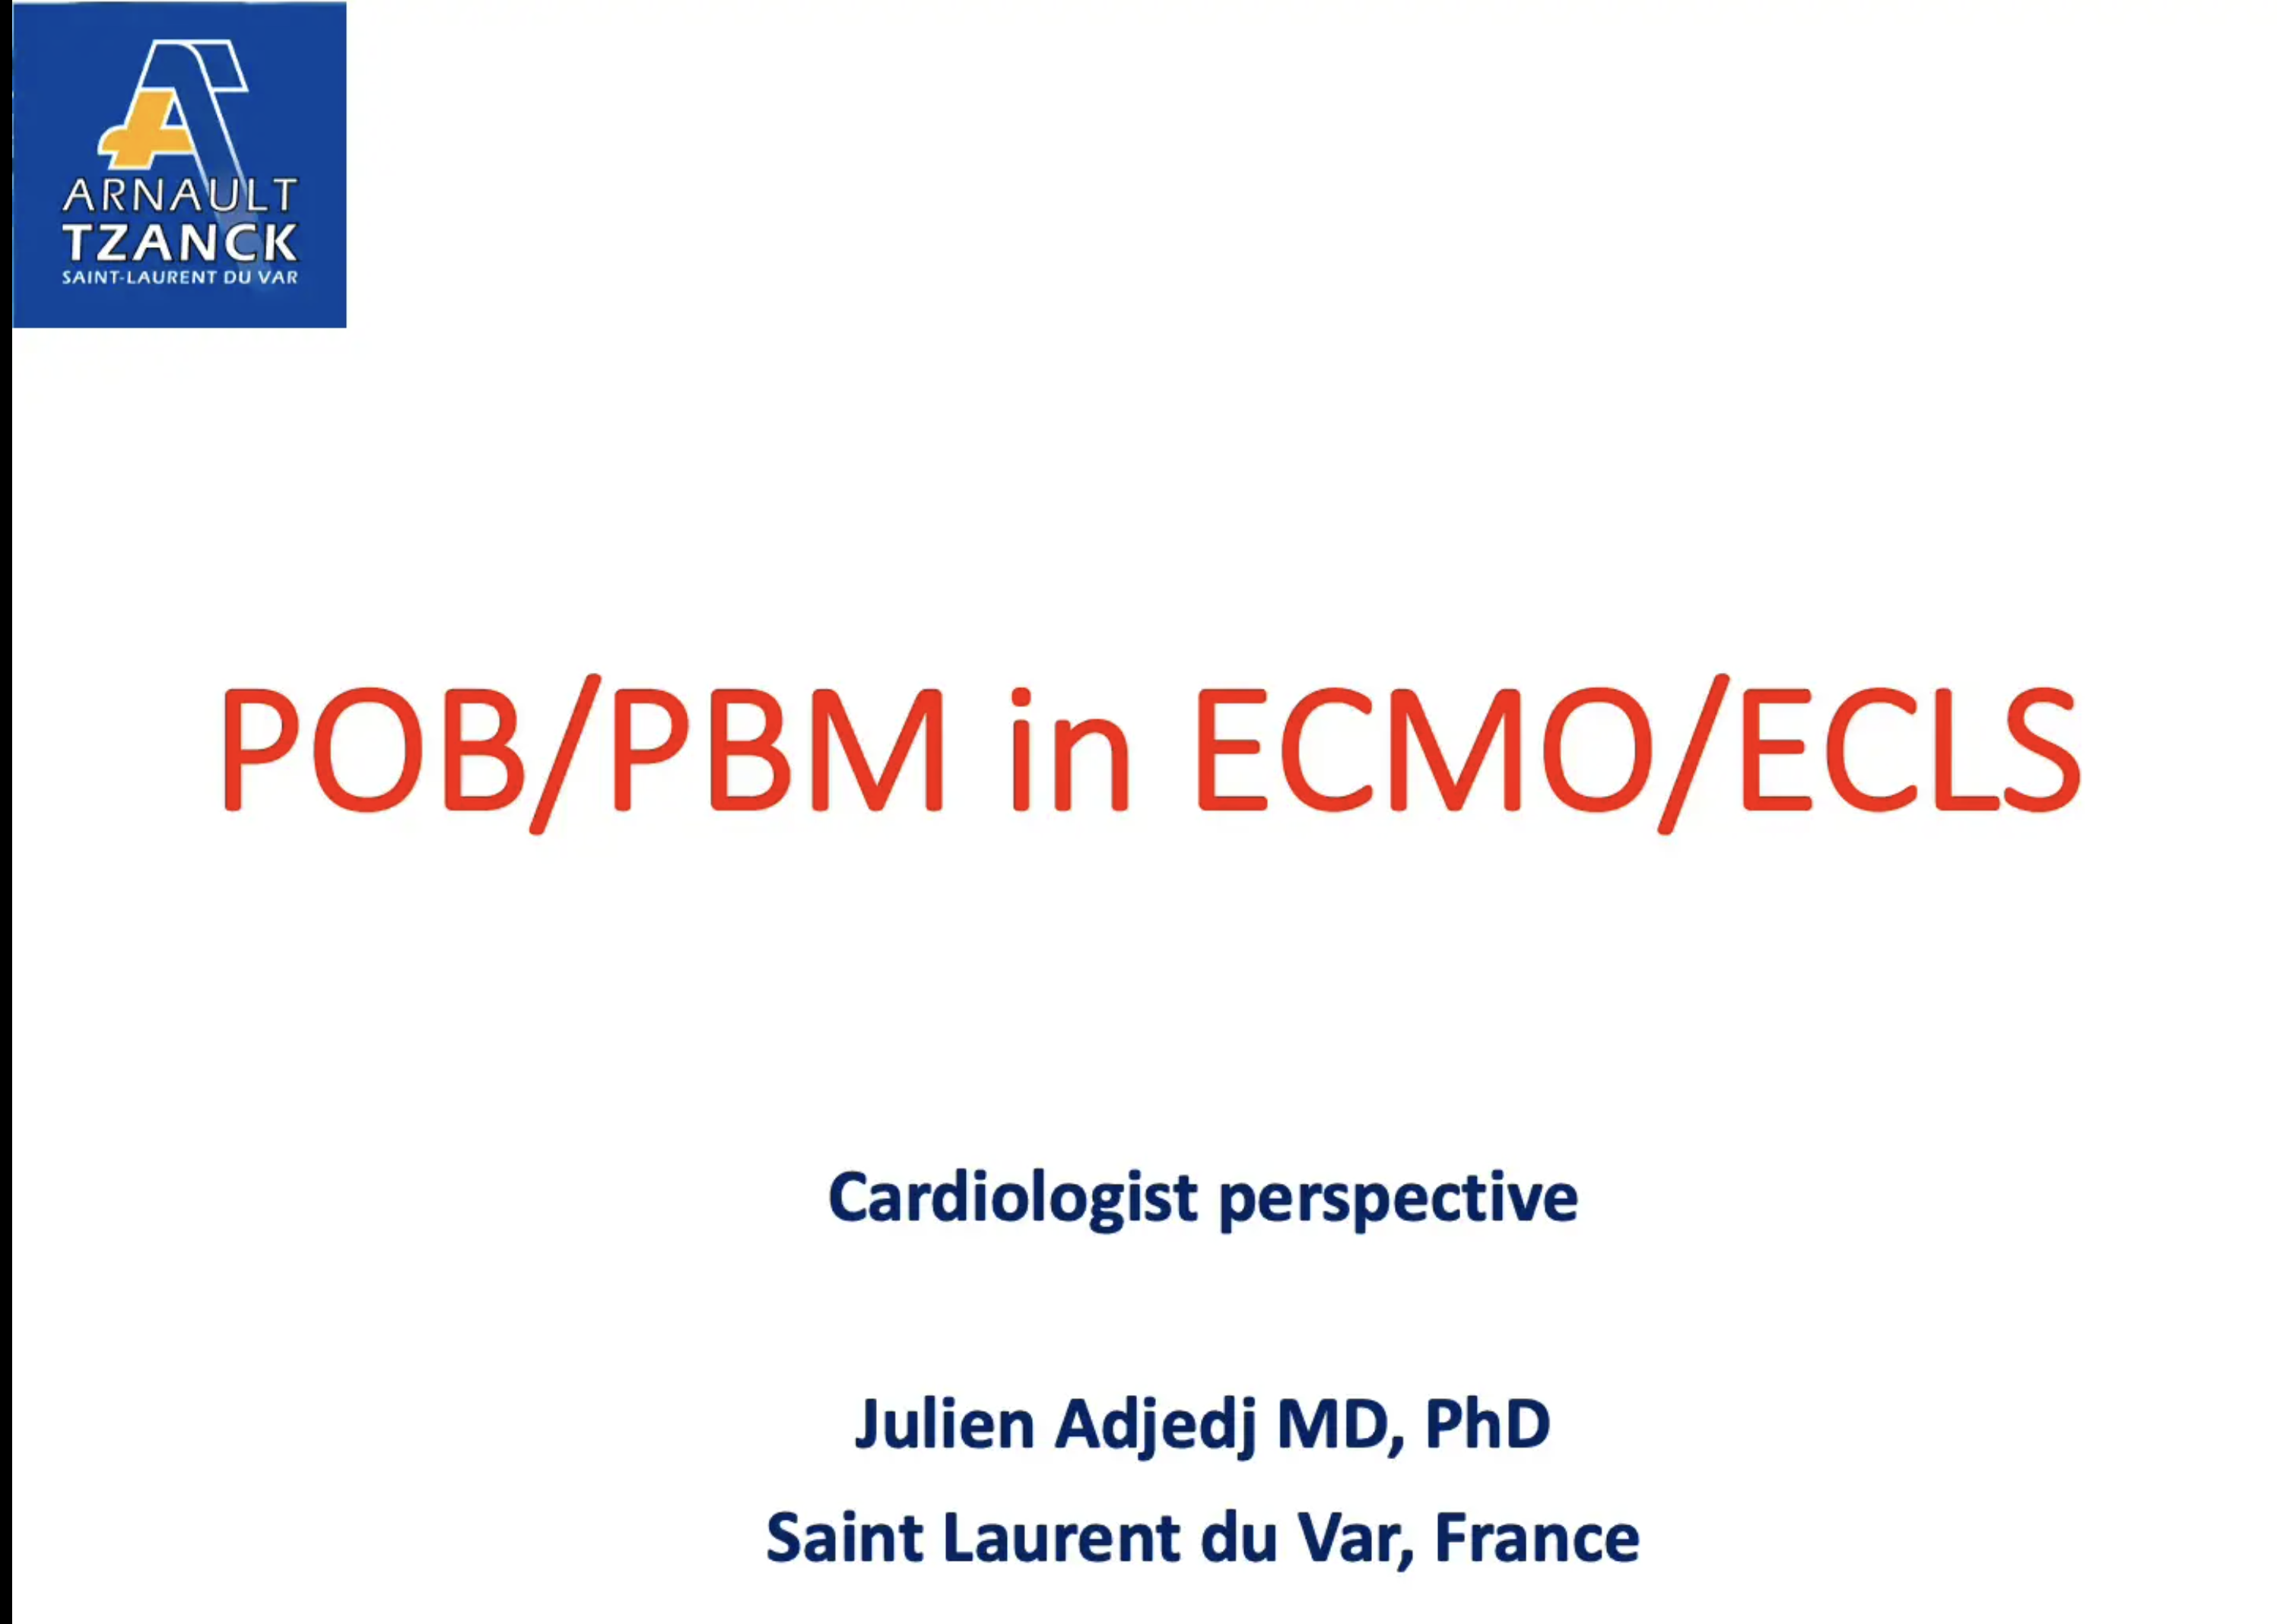 pob-pbm-in-ecmo-ecls-cardiologists-perspective